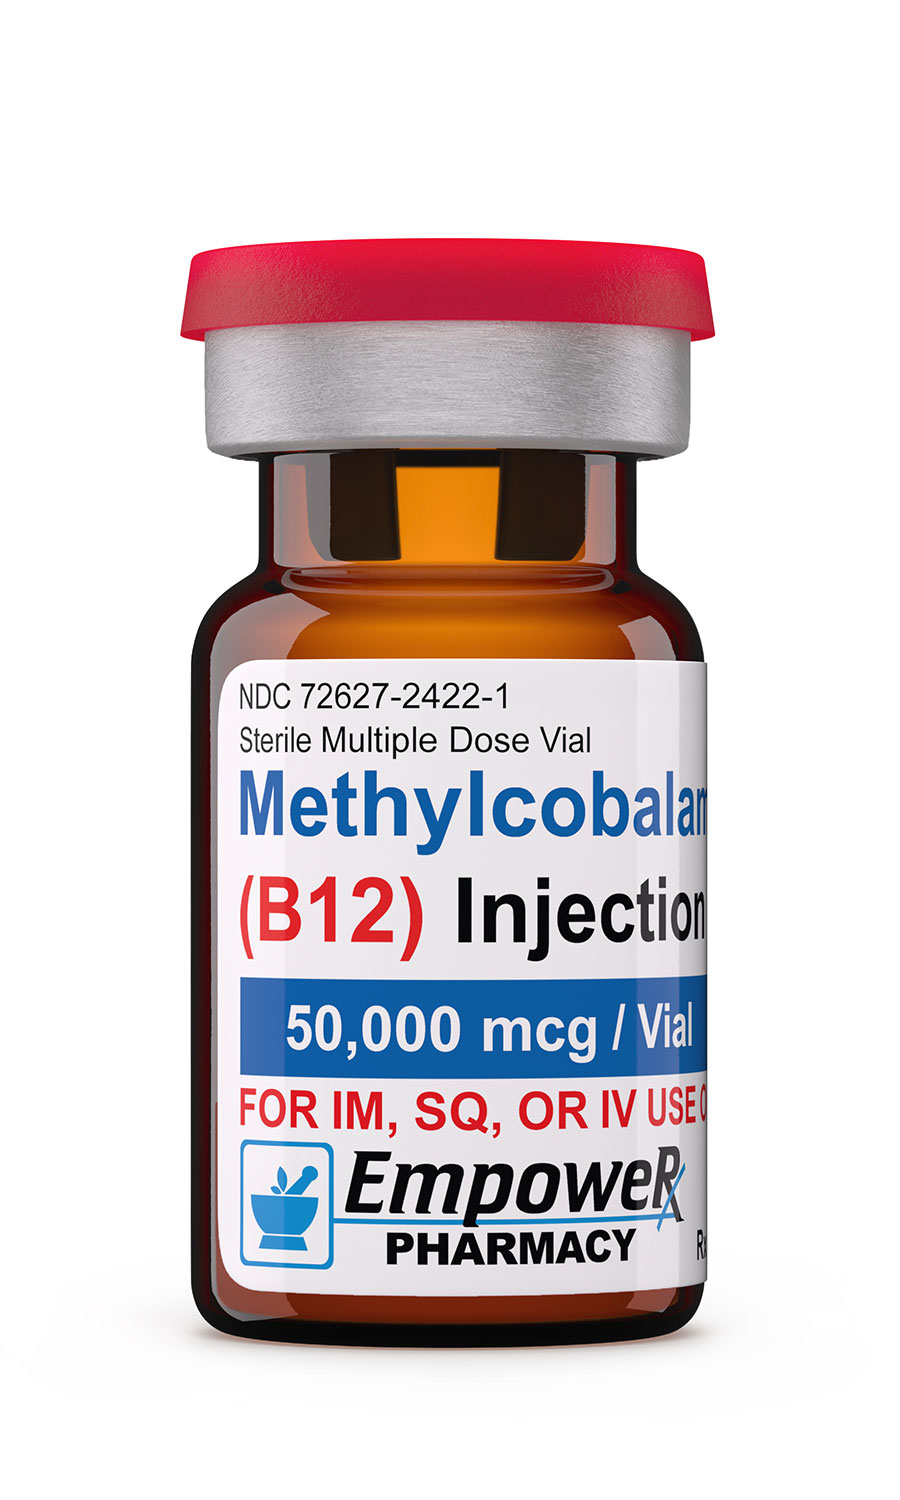 Methylcobalamin Vitamin B12 Injection Compound Empower Pharmacy